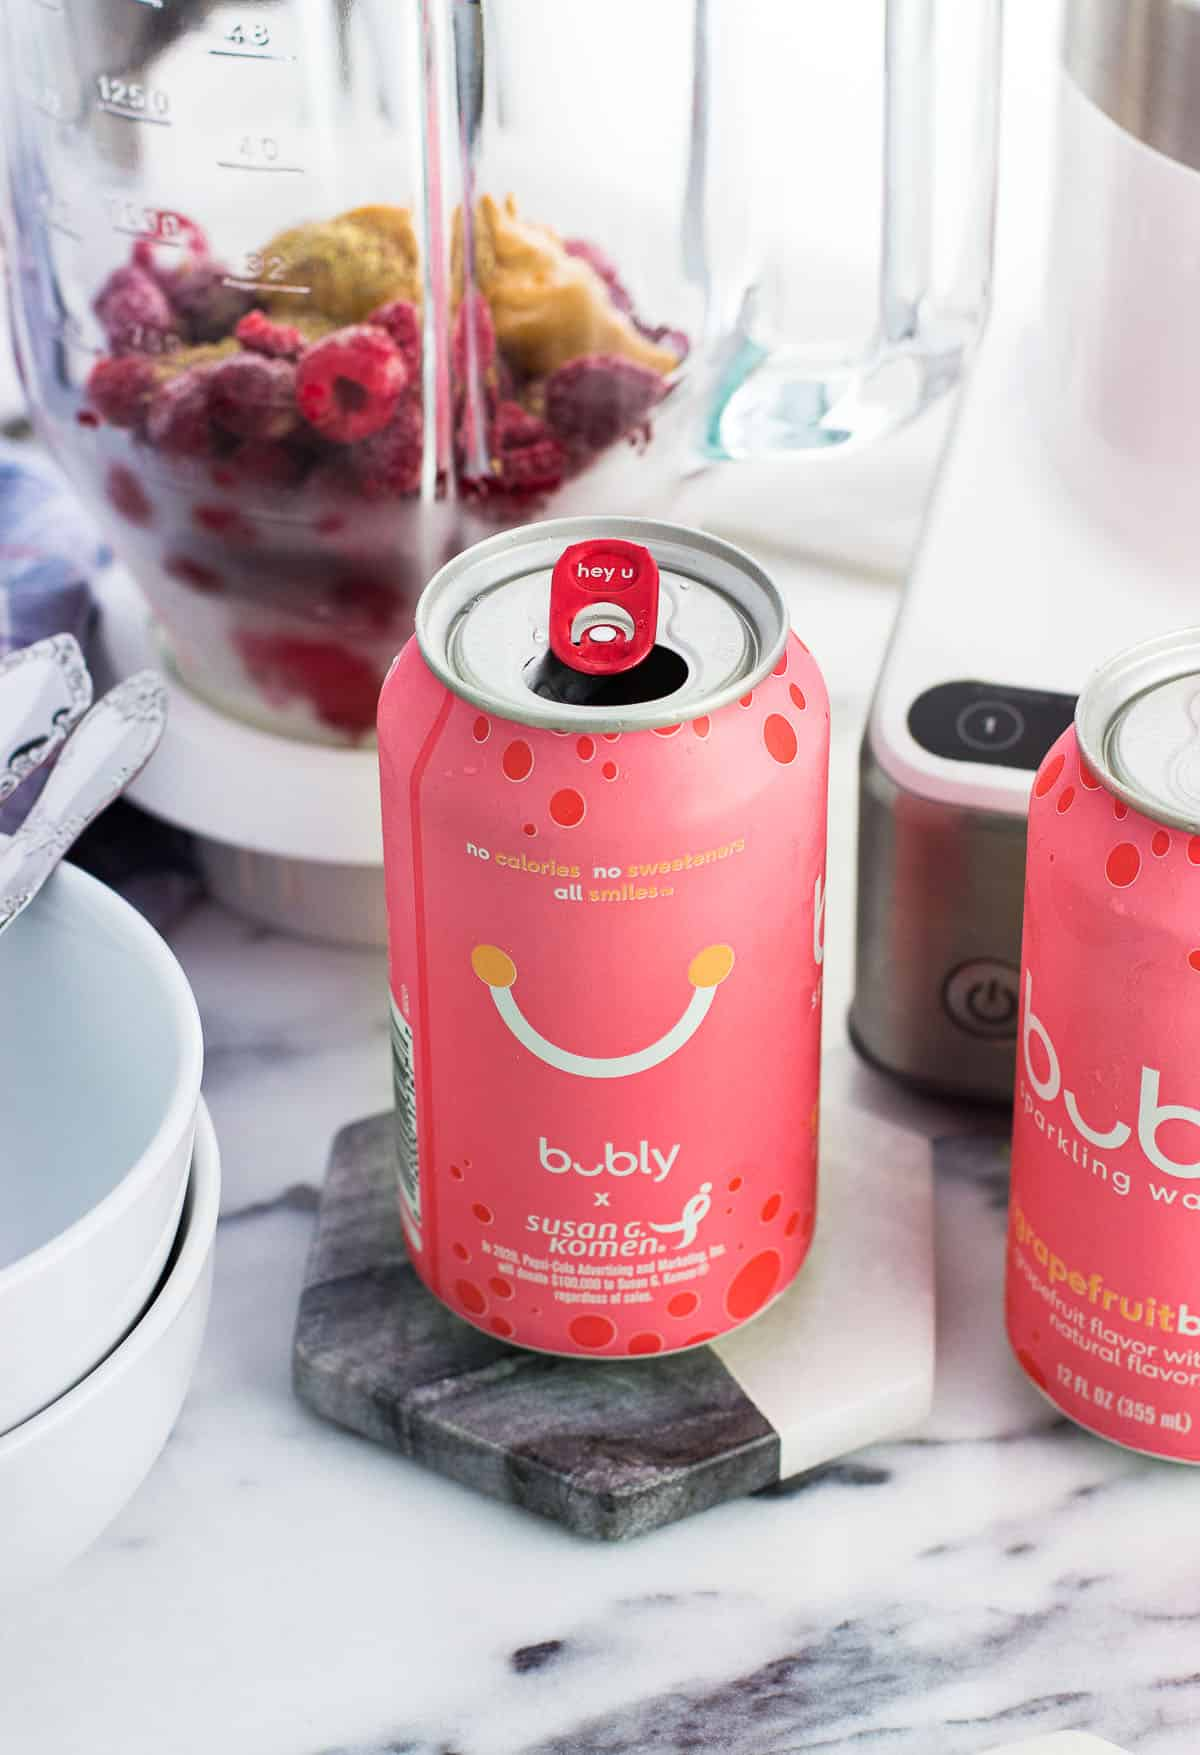 An open can of grapefruit bubly™ sparkling water on a marble coaster next to bowls, another can, and a glass blender filled with the recipe ingredients